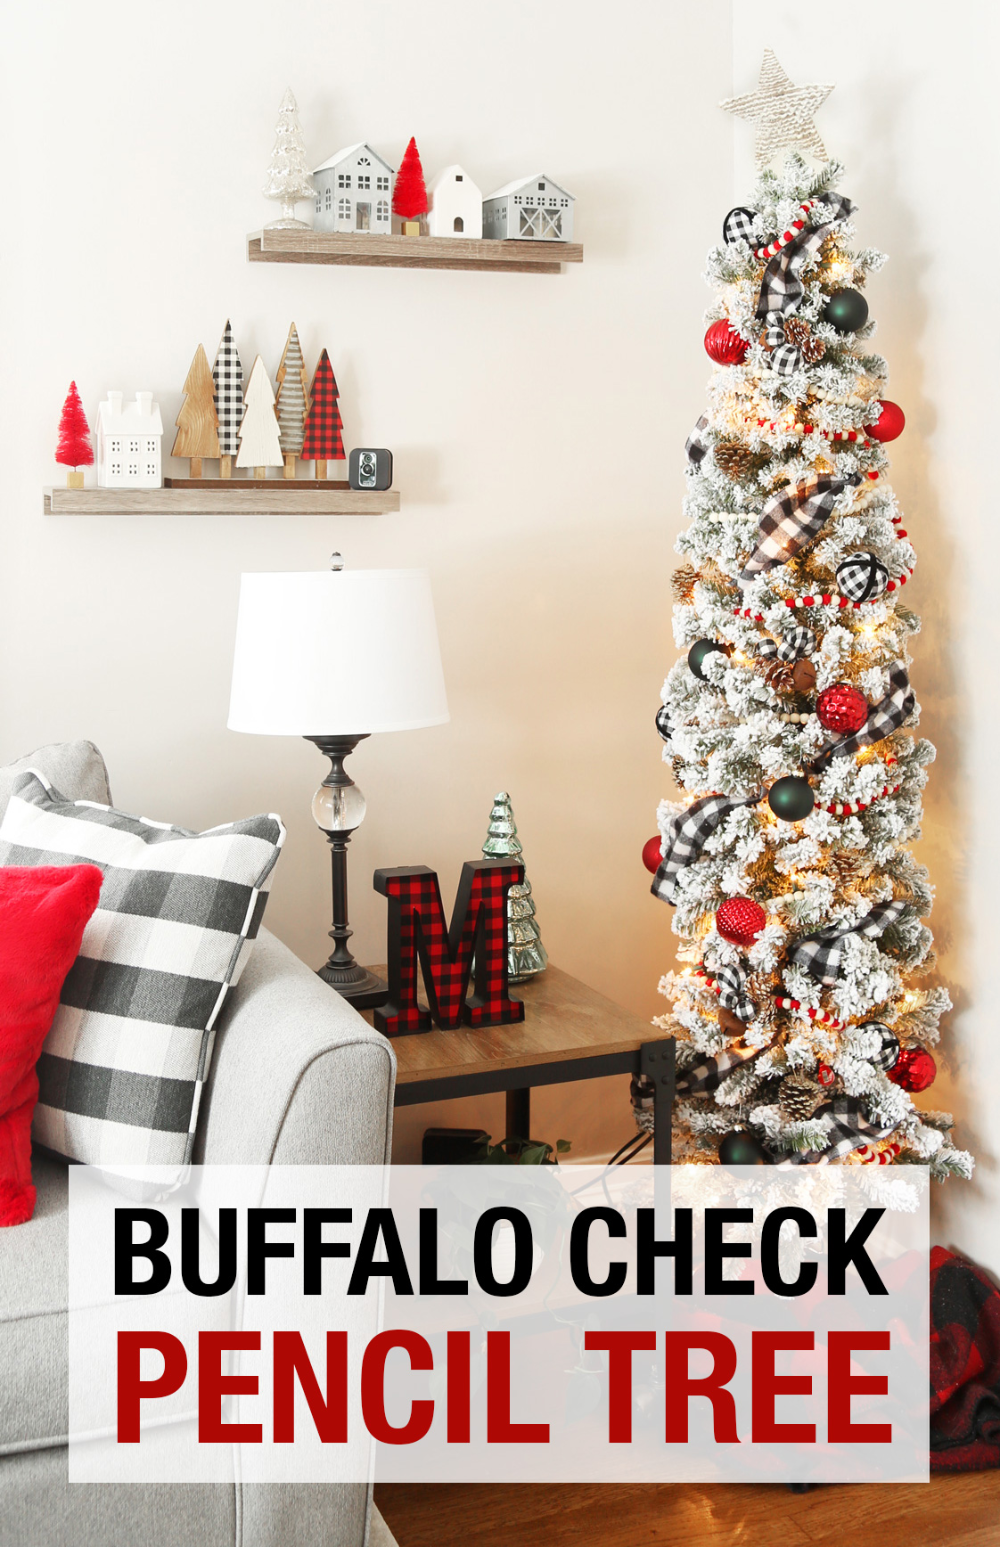 Buffalo Check Pencil Christmas Tree - Weekend Craft